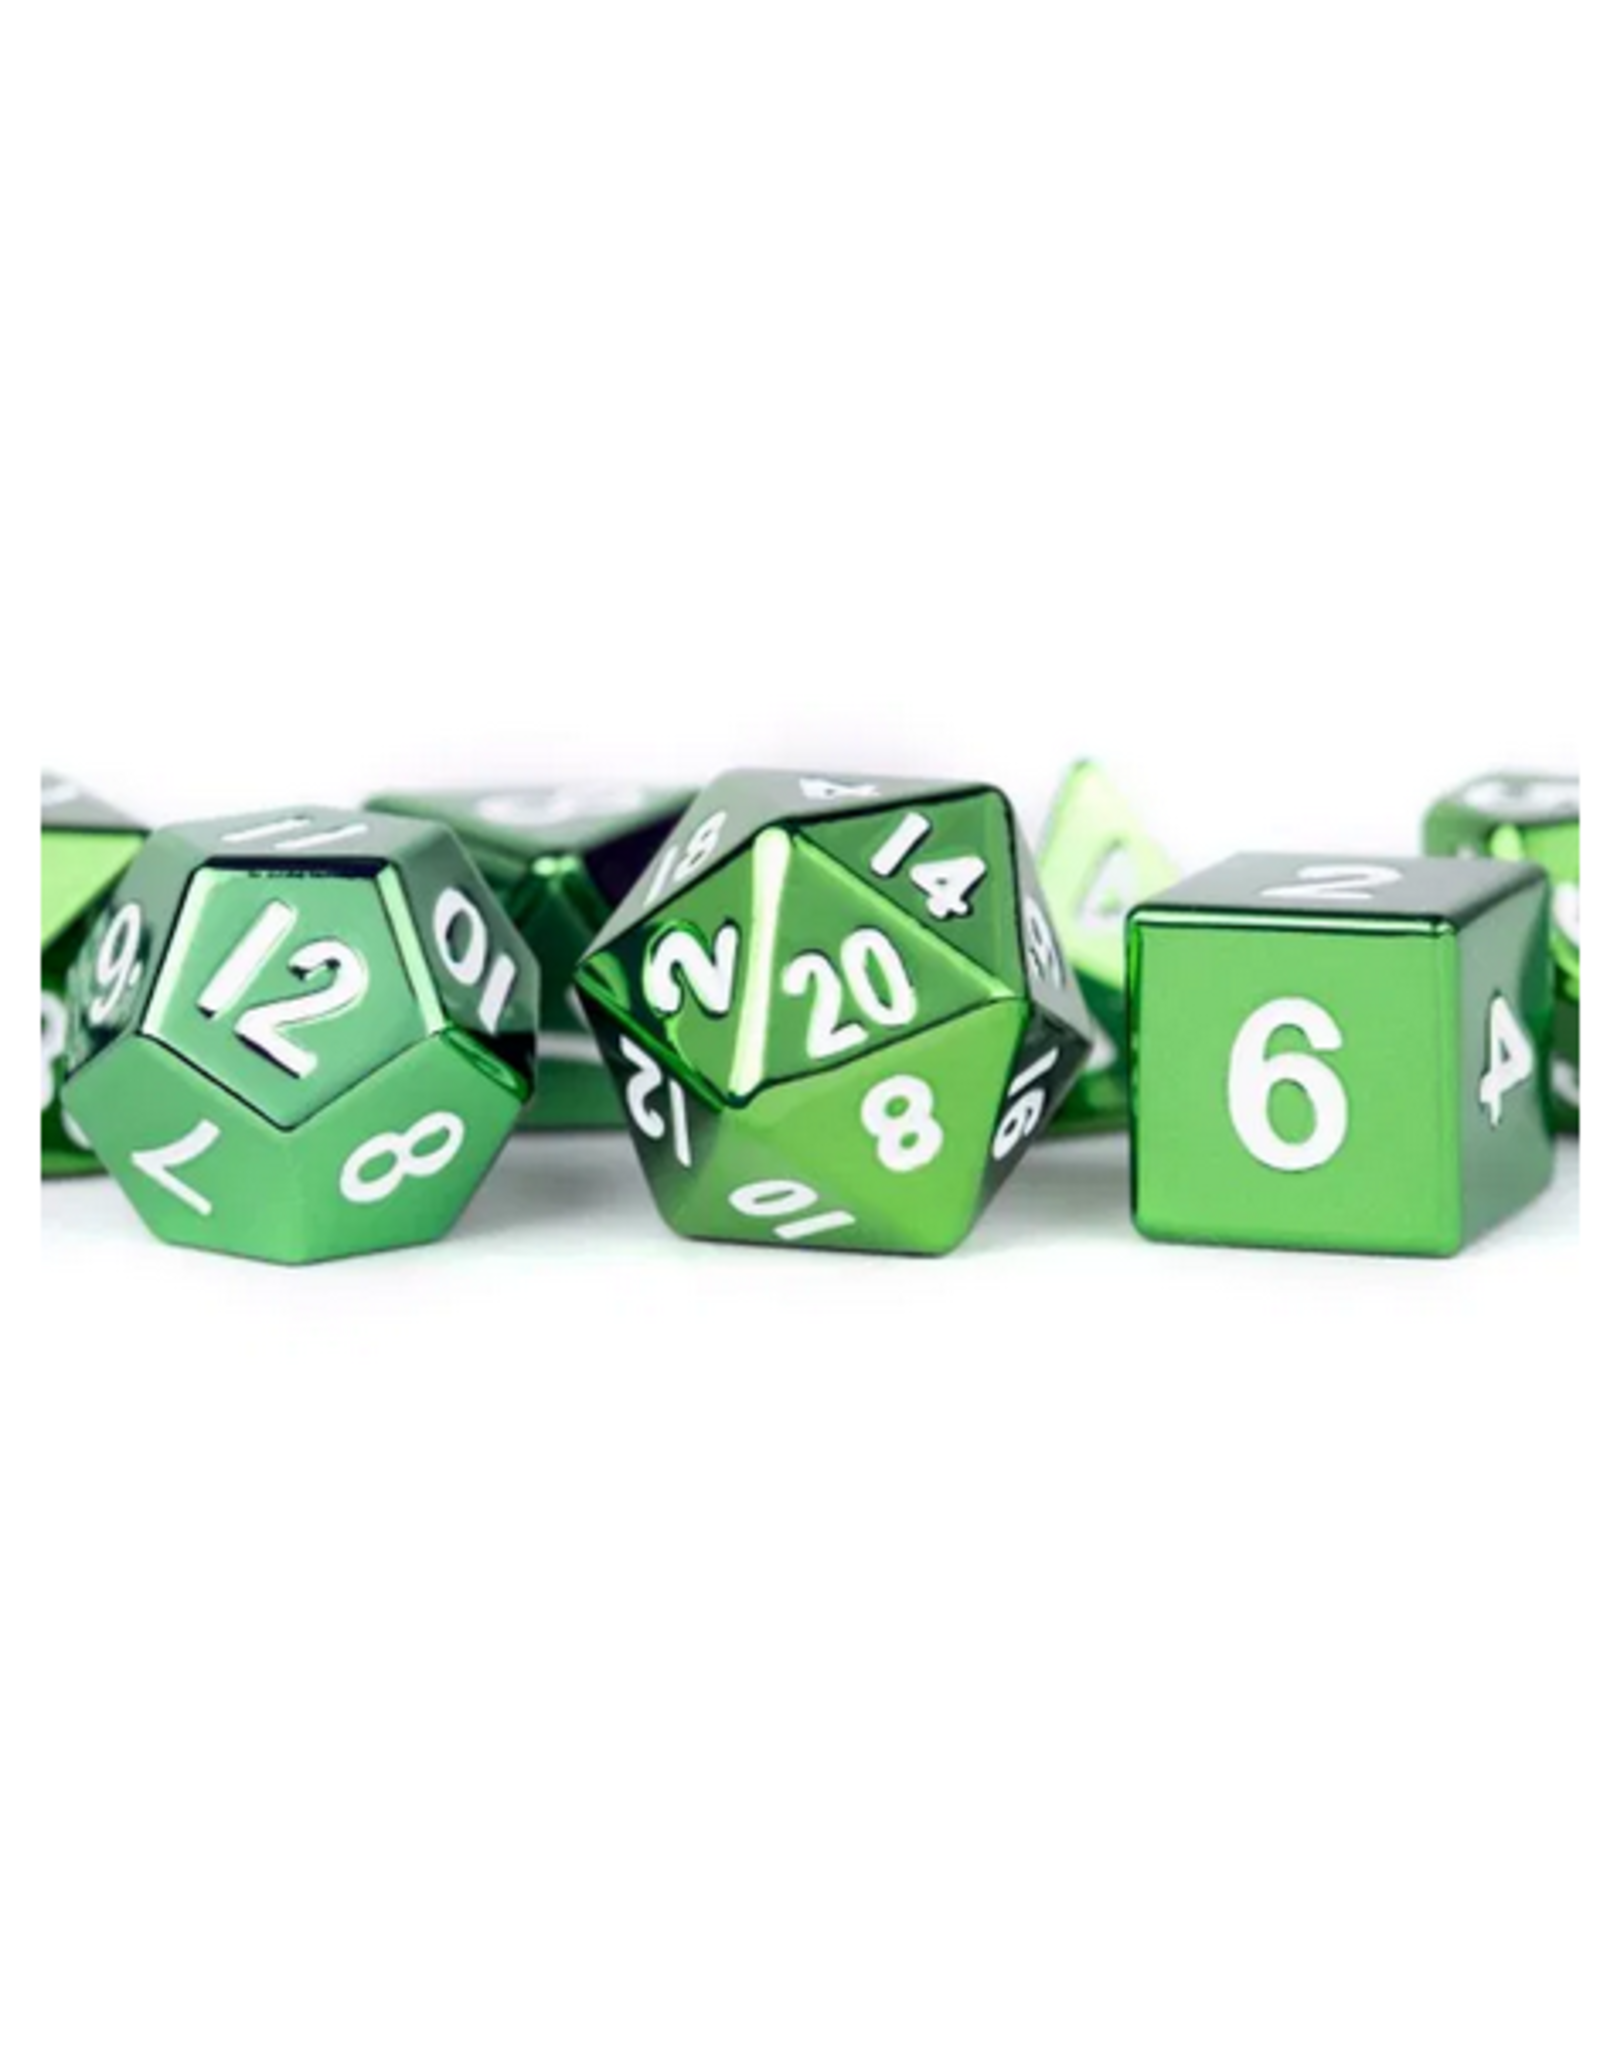 Dice 16mm Green Painted Metal Polyhedral Dice Set